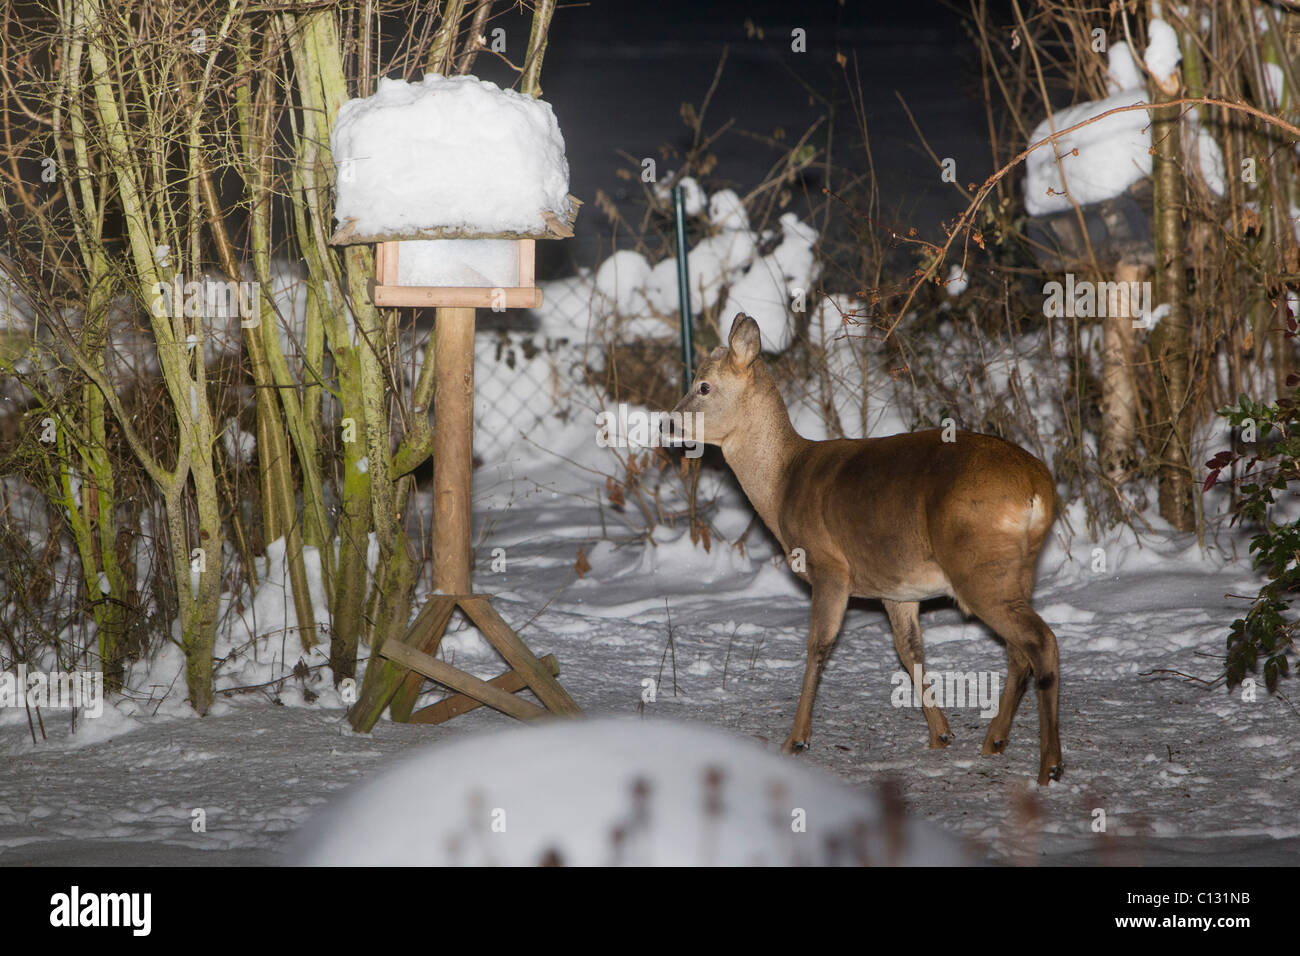 Roe Deer (Capreolus capreolus), in garden at night, searching for food in winter - Stock Image